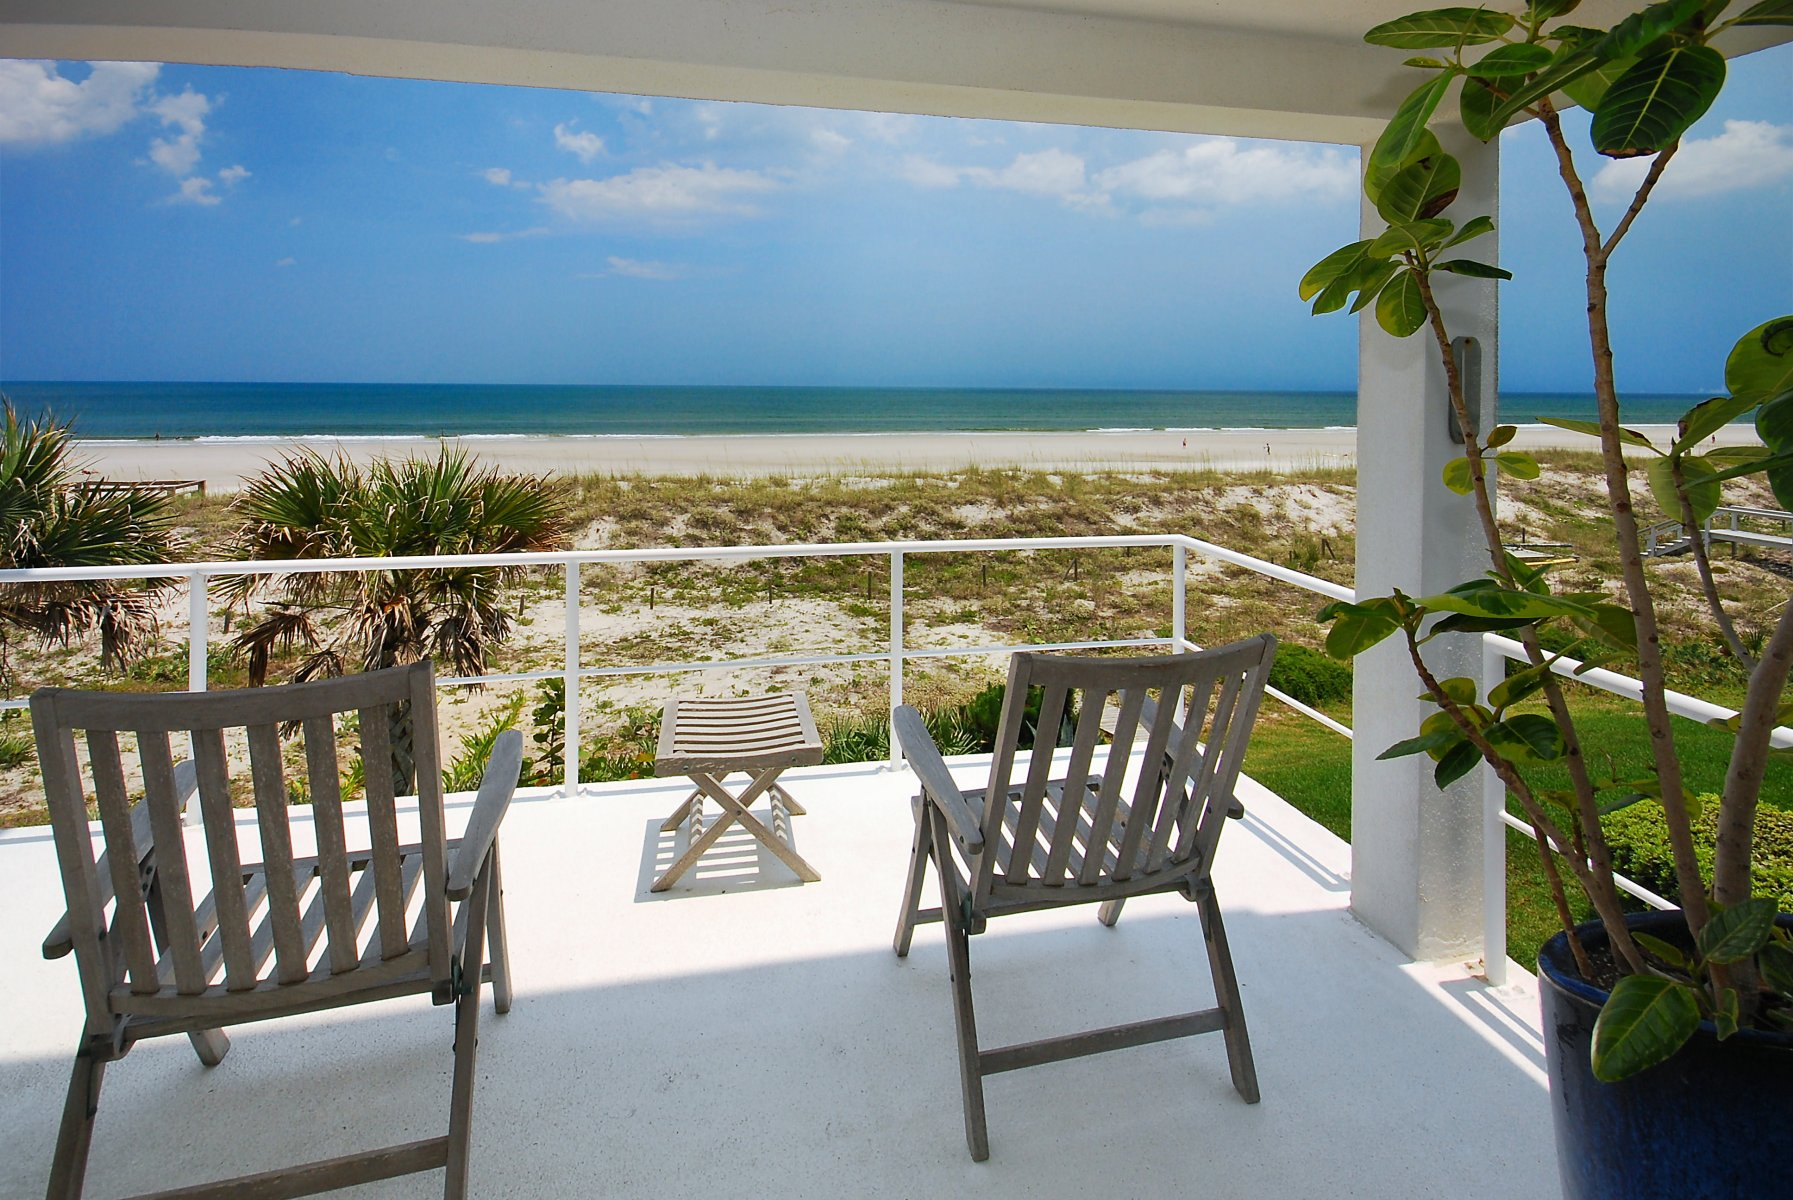 neptune beach dating site Choose from 37 jacksonville beach hotels with huge savings jacksonville beach is known for its live music scene and theater scene  red roof inn neptune beach.